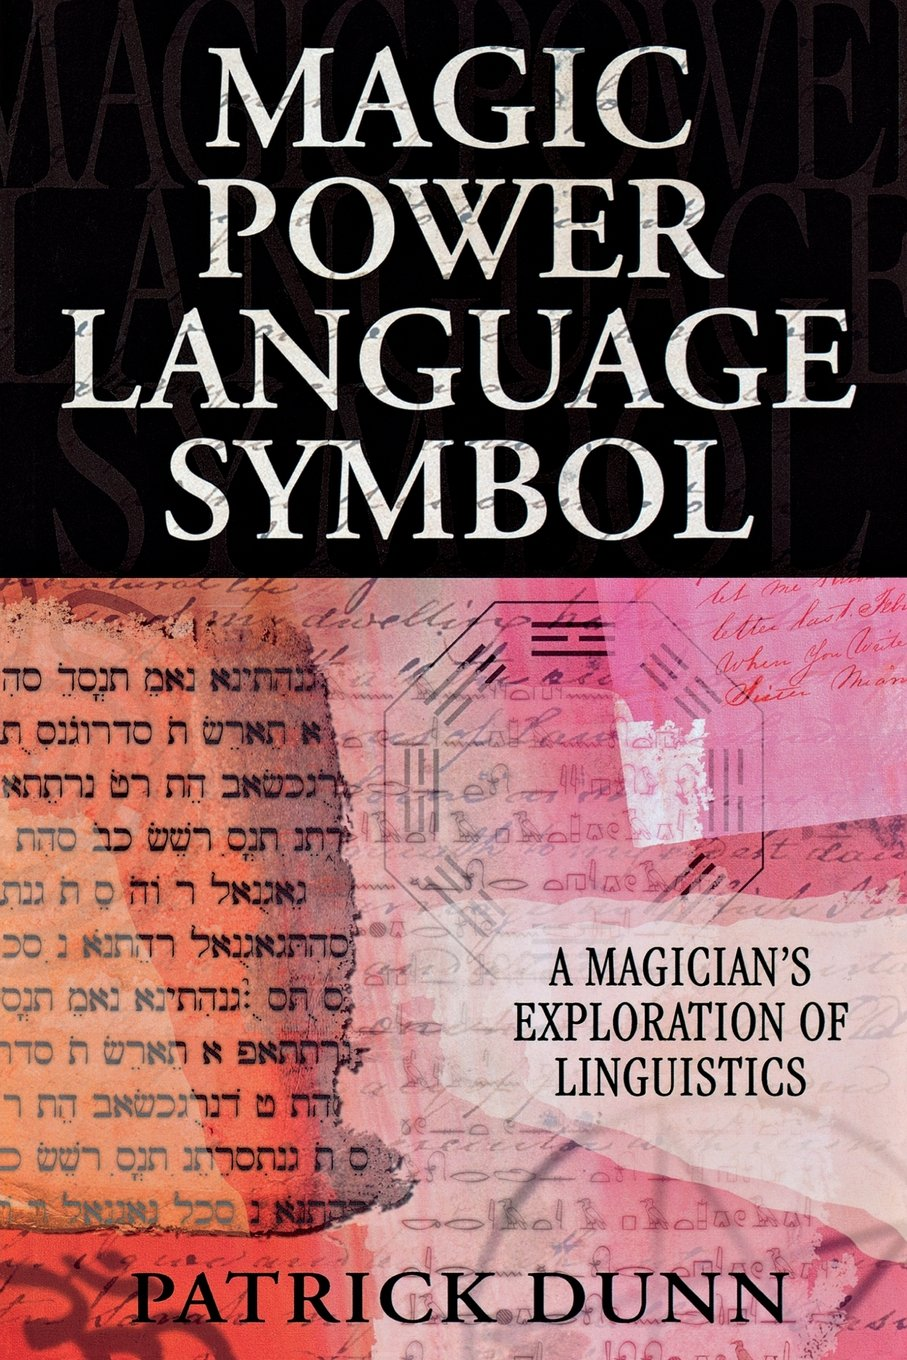 Magic, Power, Language, Symbol: A Magician's Exploration of Linguistics by Llewellyn Publications